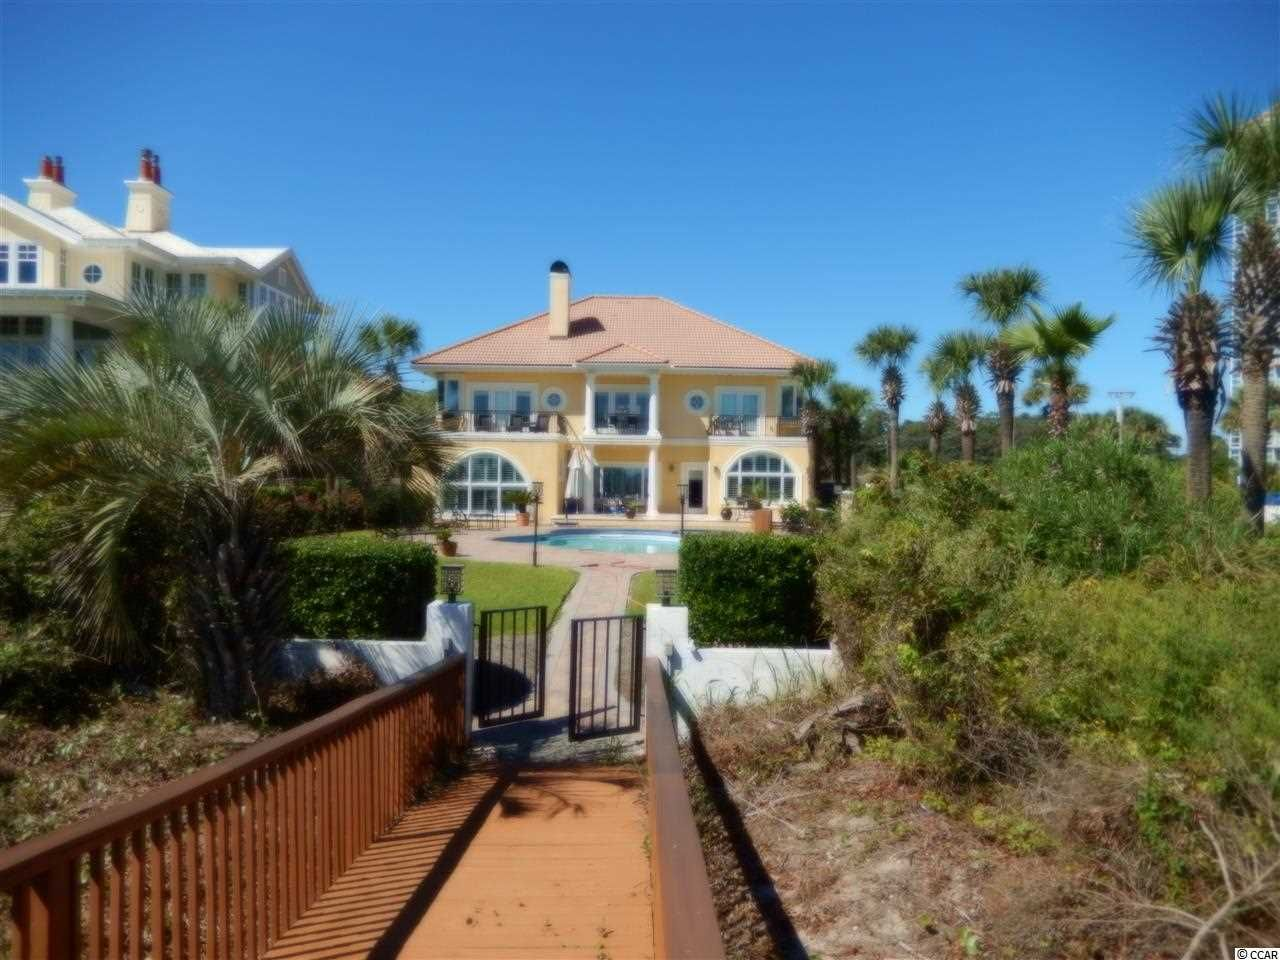 View Myrtle Beach Oceanfront Homes For Sale. This is 5104